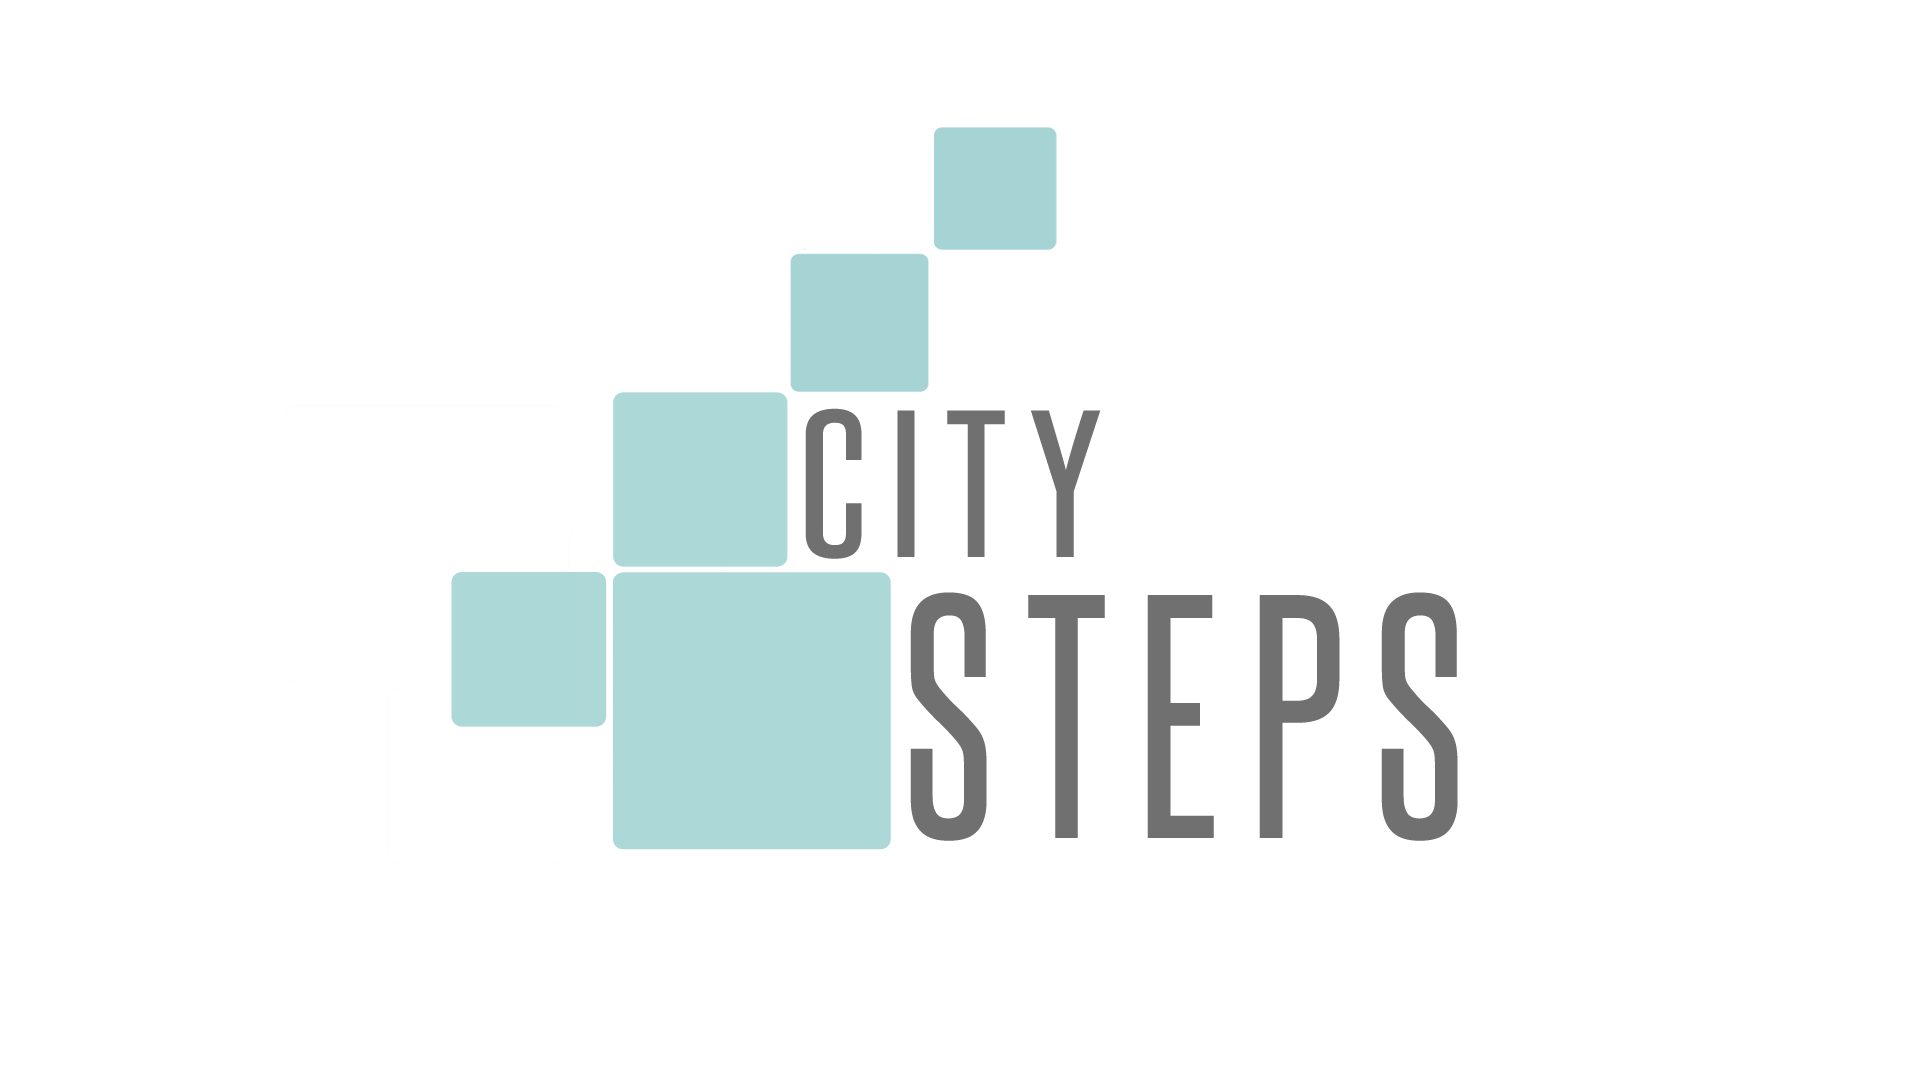 citysteps.png